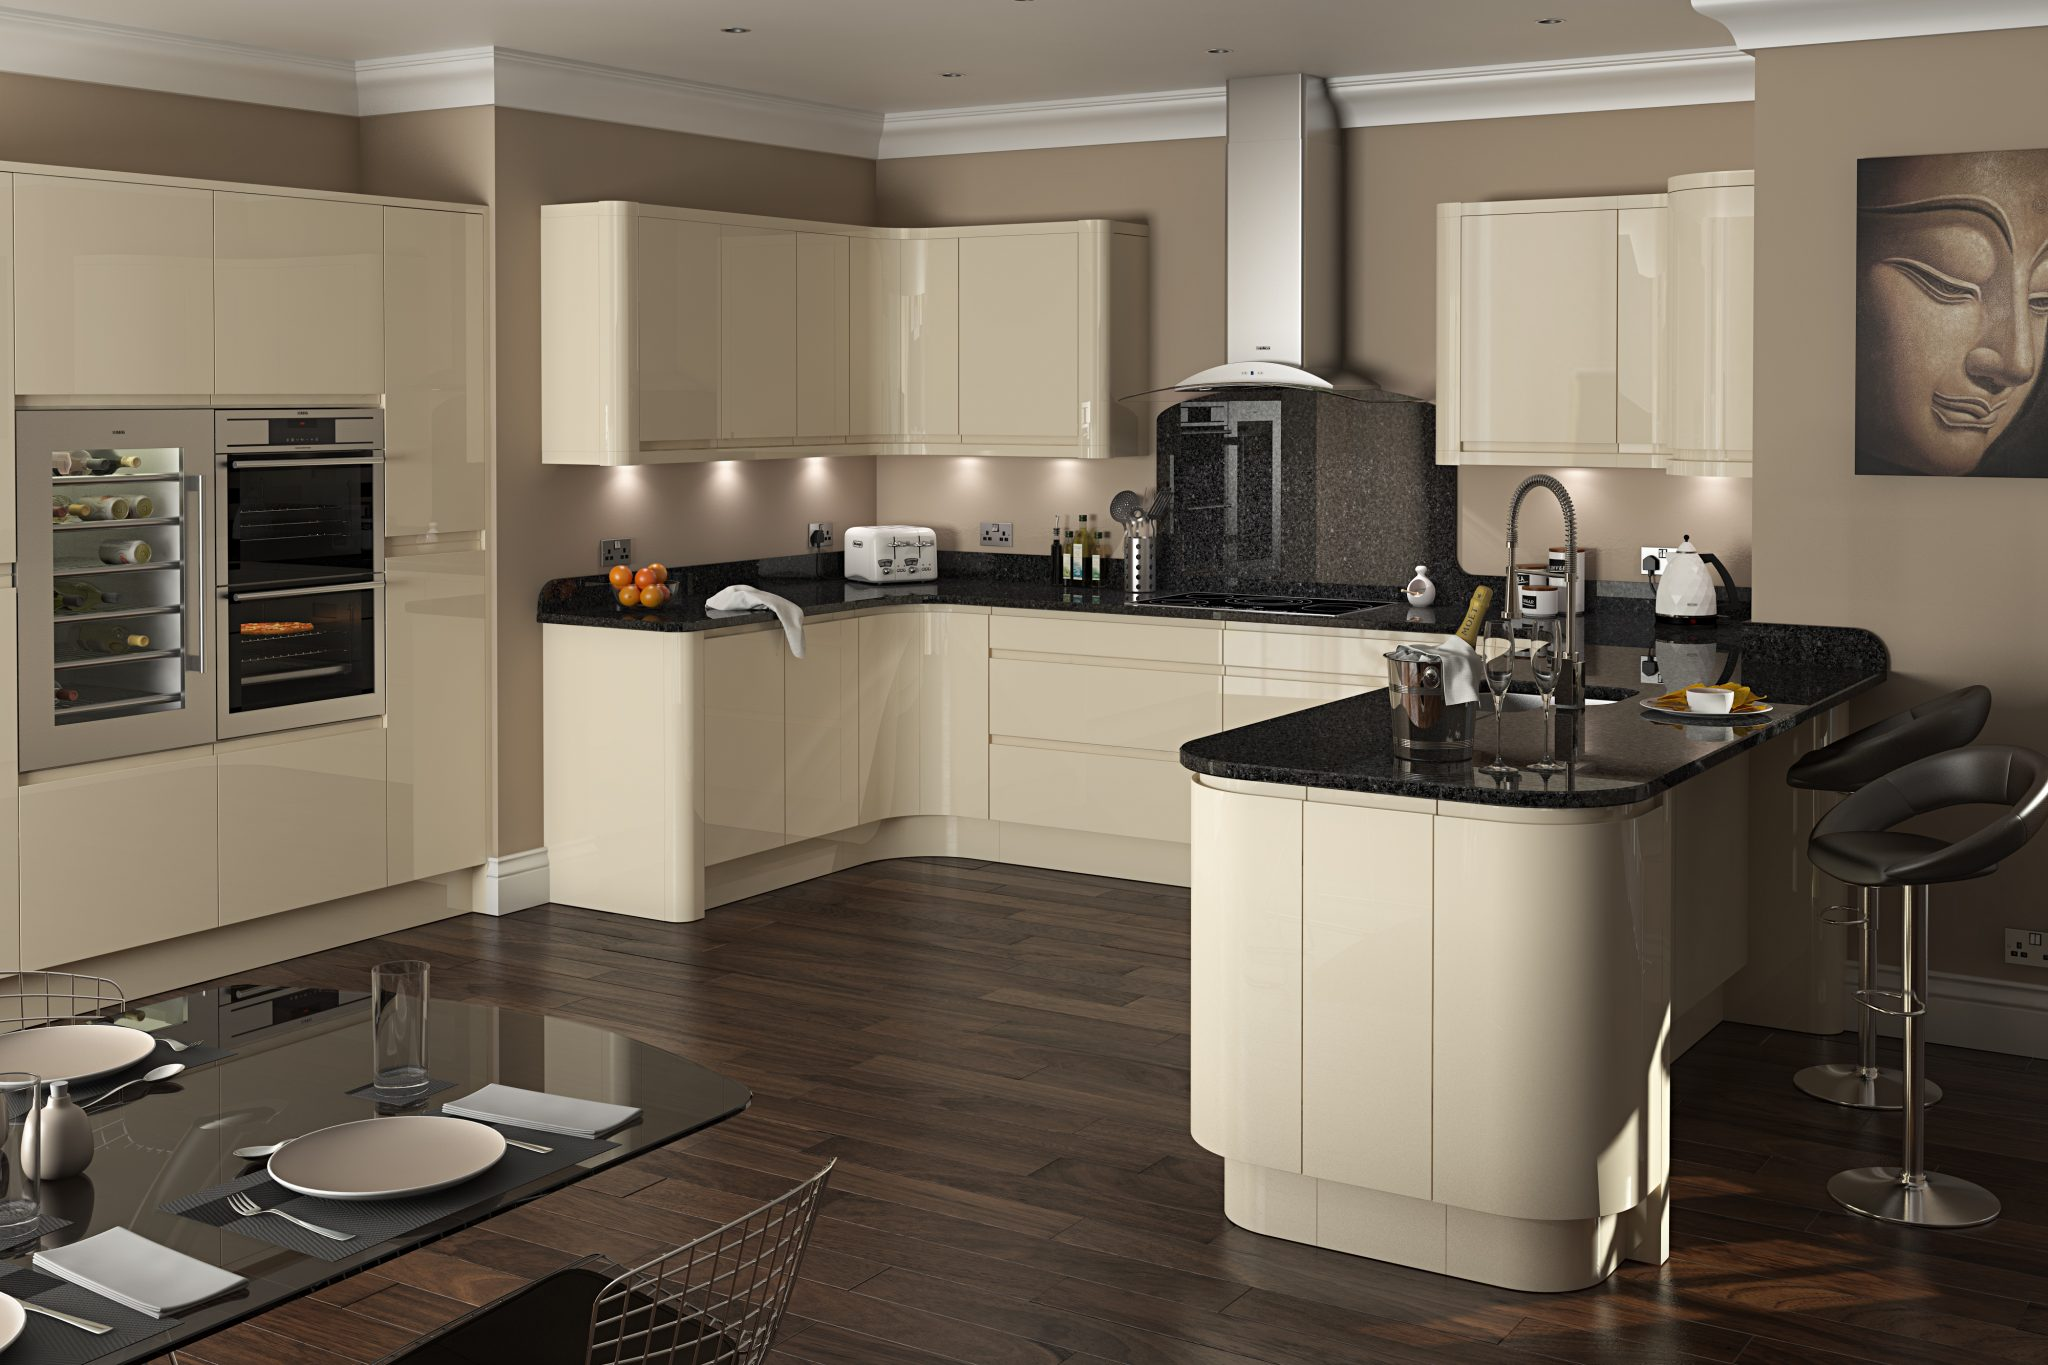 Kitchen design kitchens wirral bespoke luxury designs for Kitchen ideas pictures